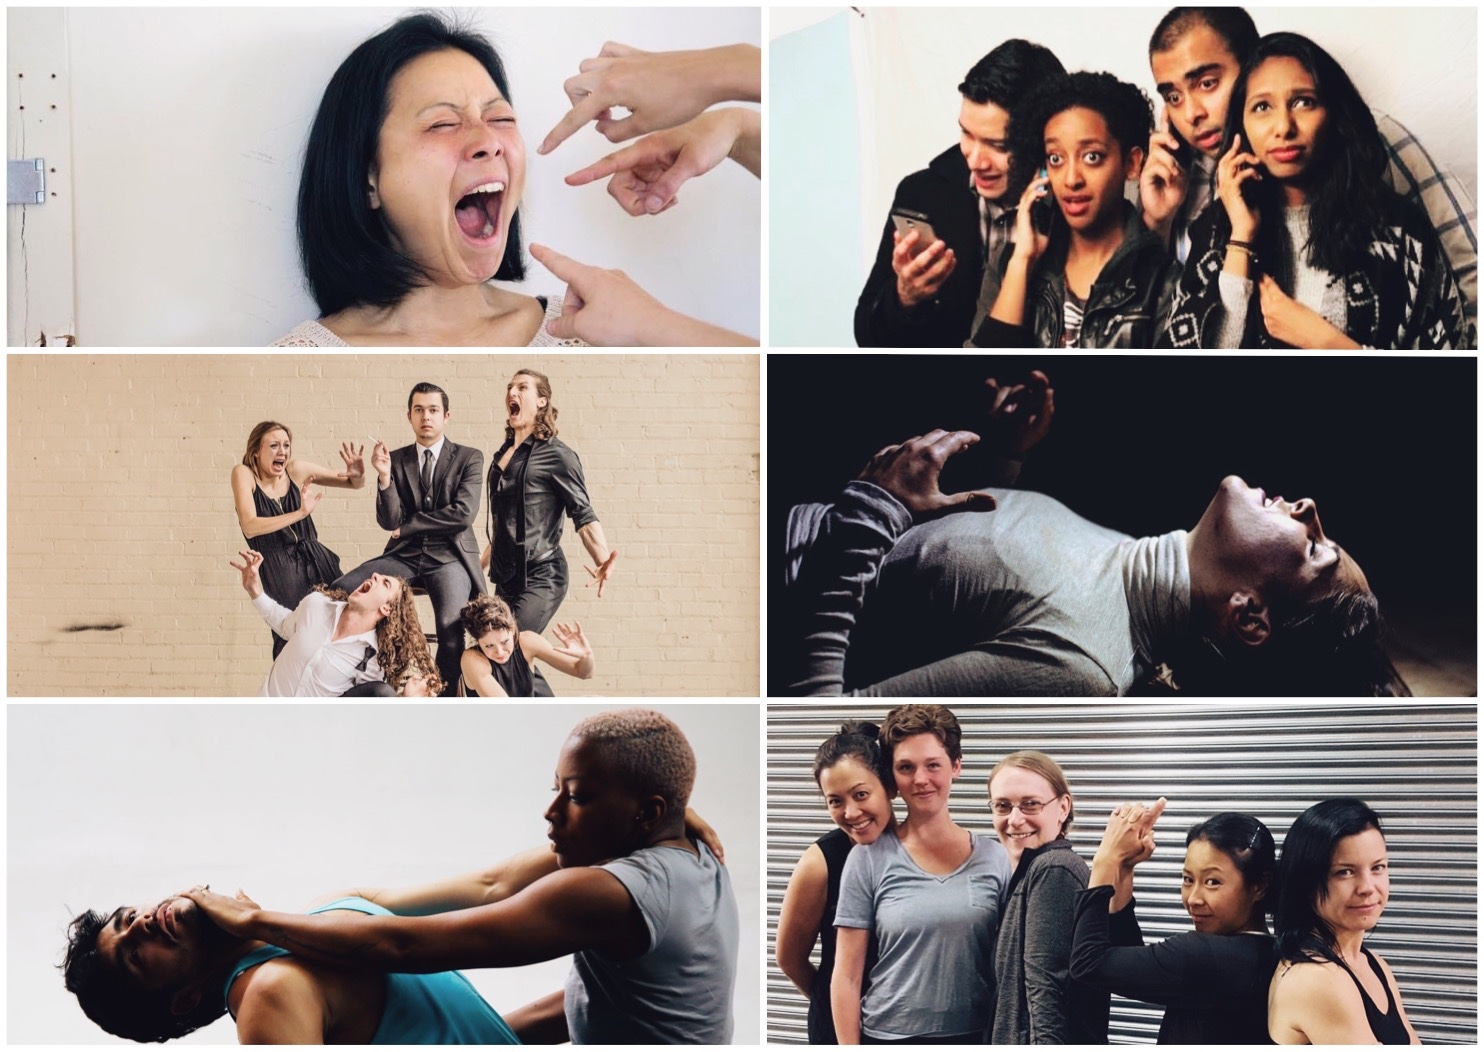 Clockwise from top left: Jen Hum in 'Little Fires'; Cast Members of 'SExT'; Kylie Thompson in 'Wireless Connection'; Cast Members of '[un]BOXED'; Mateo Galindo Torres & Jasmyn Fyffe in 'Rated R'; Cast Members of 'Exterminating Angel'